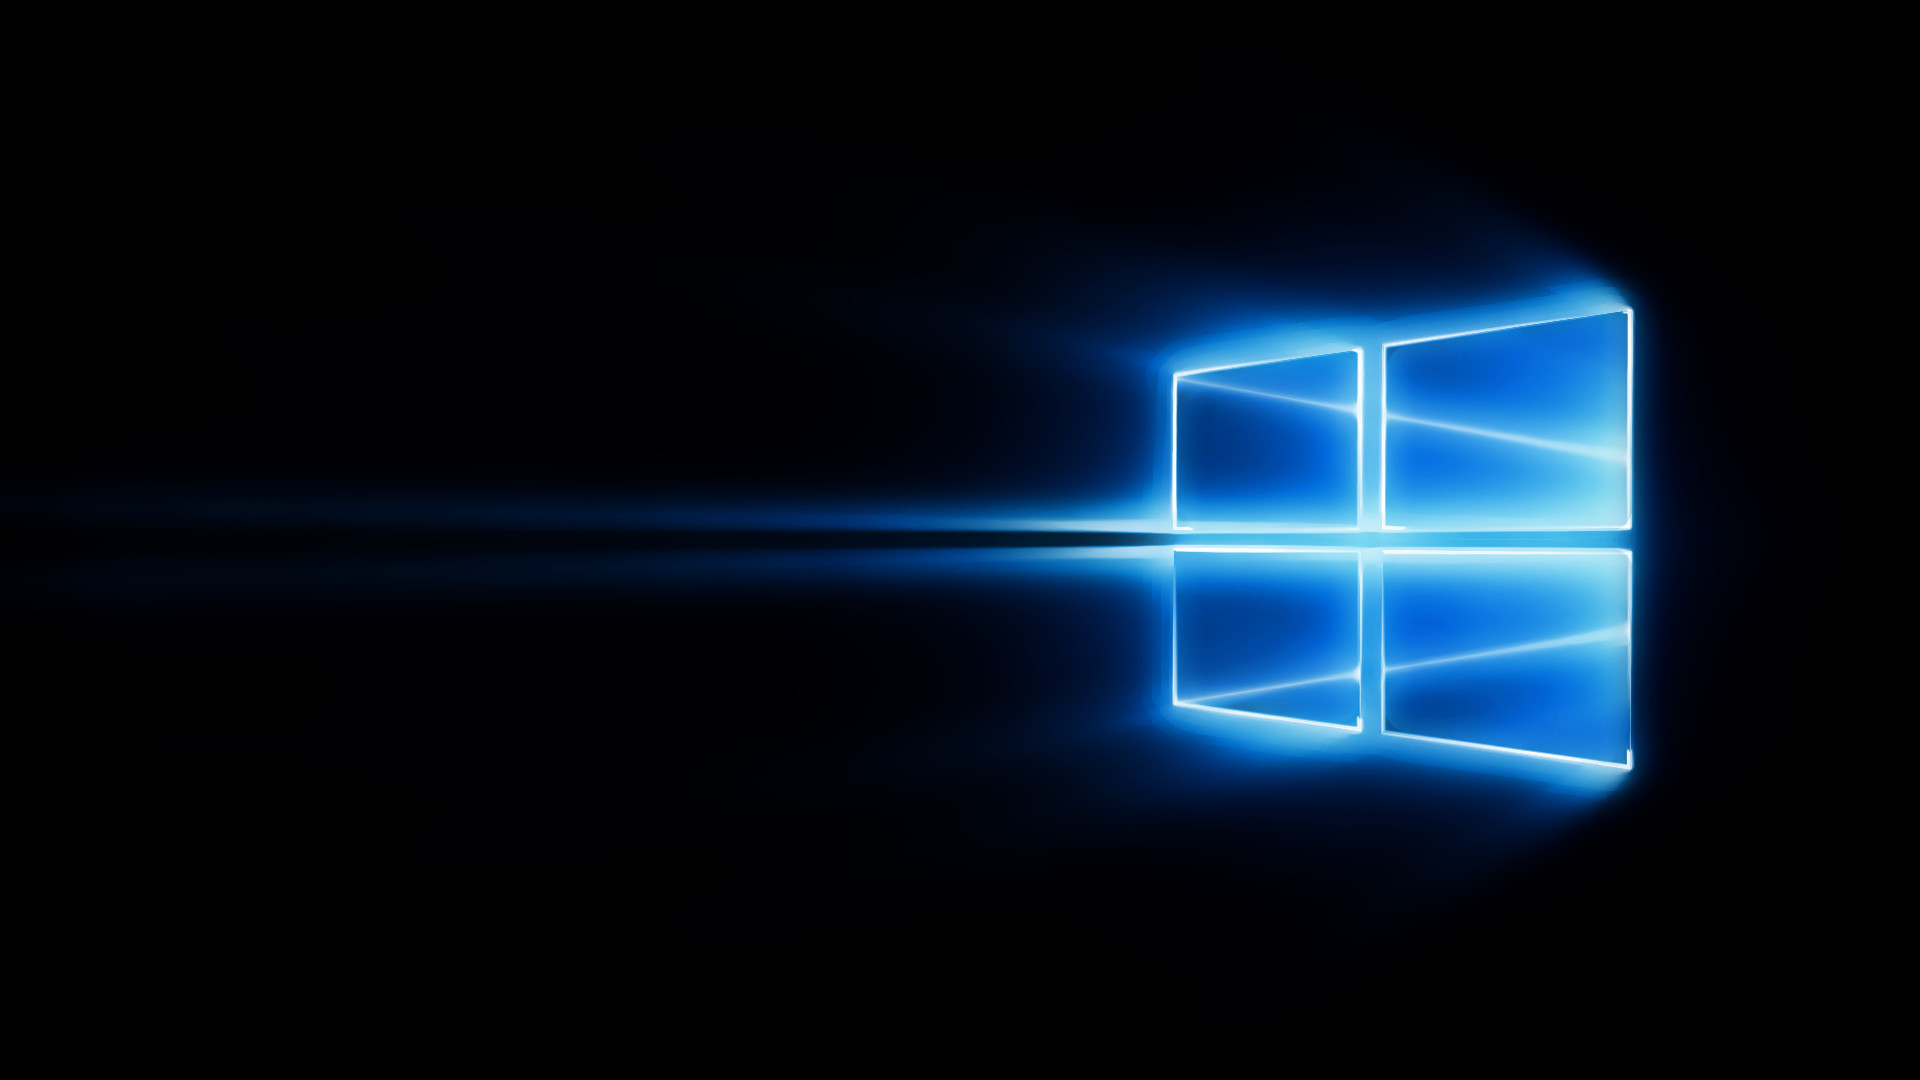 Windows 10 Black Wallpaper 1920x1080